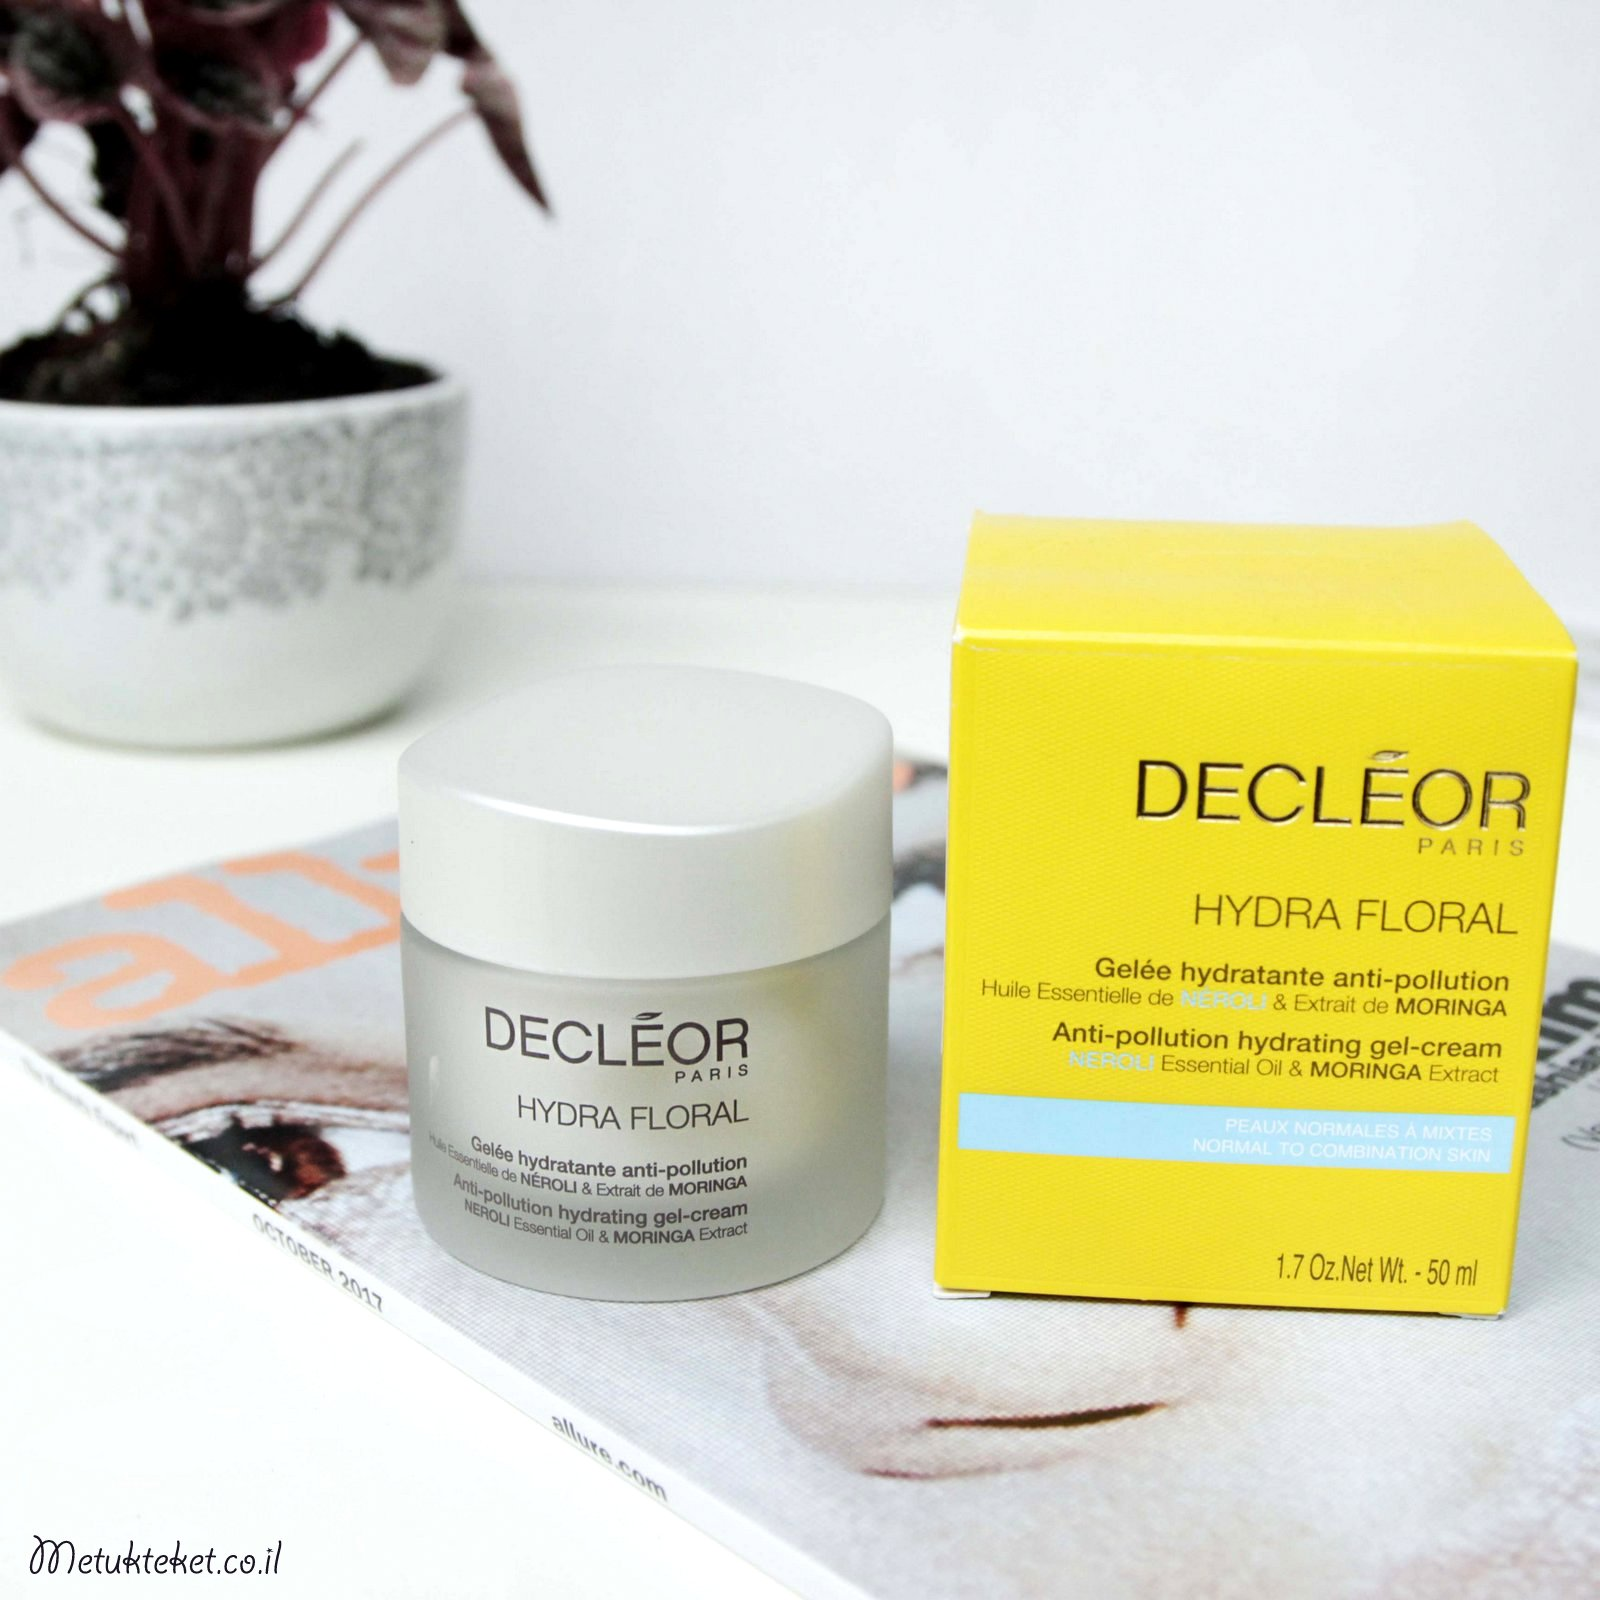 DECLEOR Anti-Pollution hydrating Gel, דקלאור, קרם לחות, ג'ל לחות